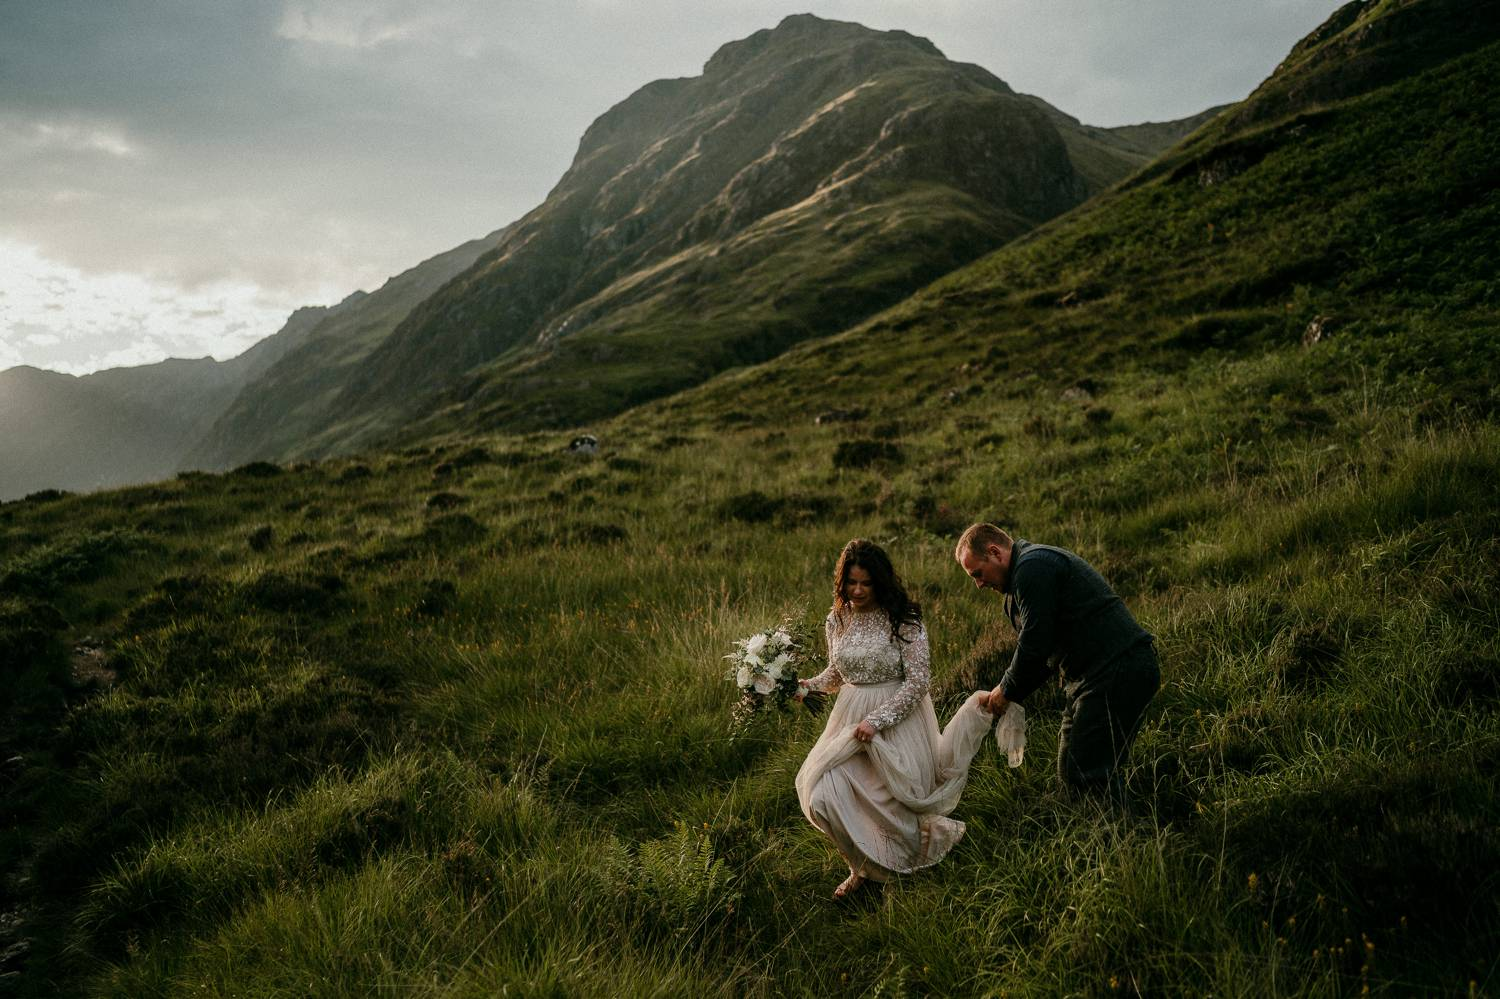 A bride walks delicately down a grassy Irish hill while her groom thoughtfully carries her train. Selling photography prints is simple when you prioritize quality over speed or cost. This image was made by Rob Dight.